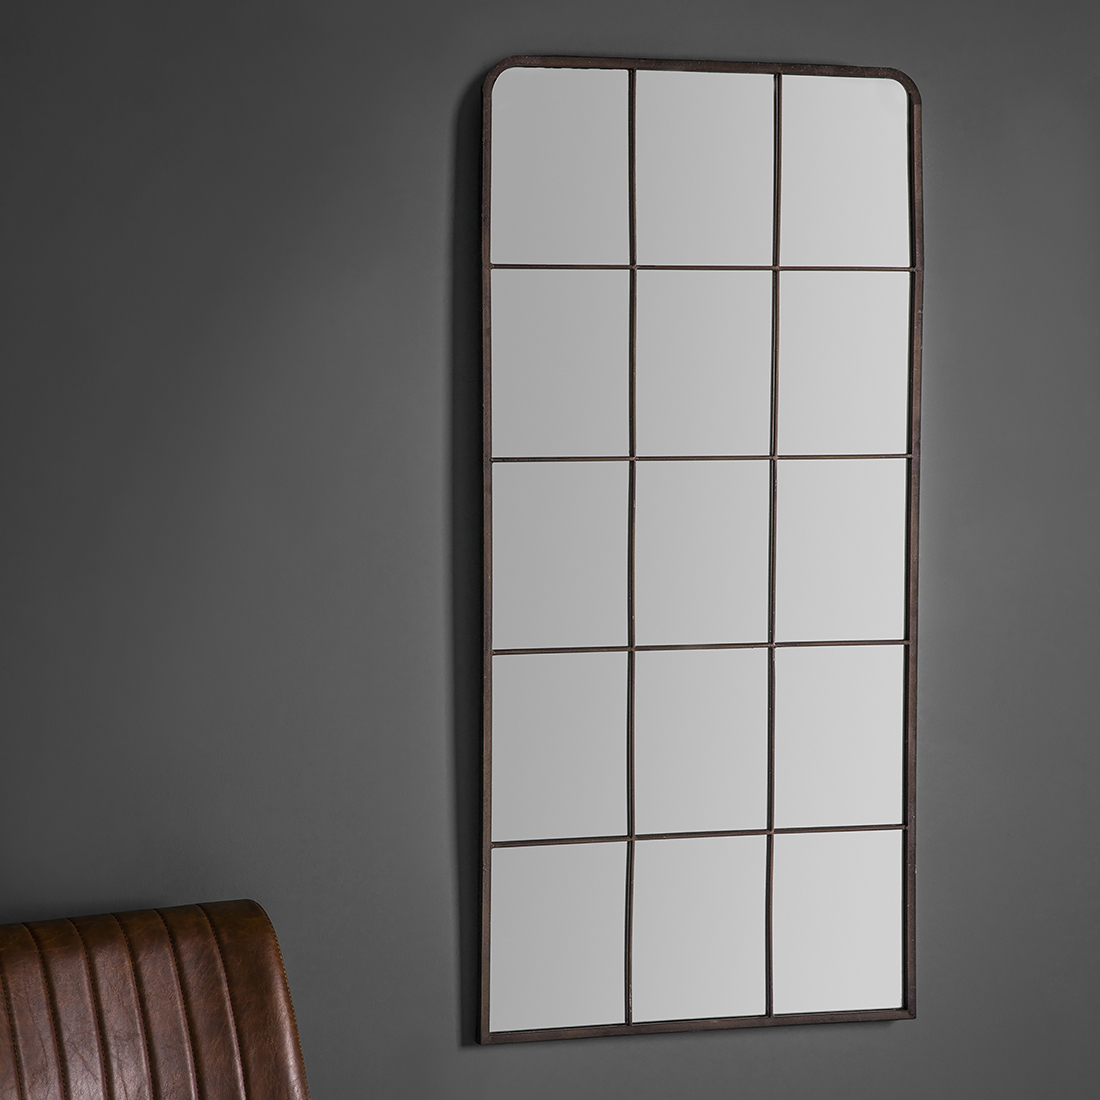 Metal Wall Mirrors Intended For Most Current Rectangular Industrial Metal Wall Mirror (View 7 of 20)